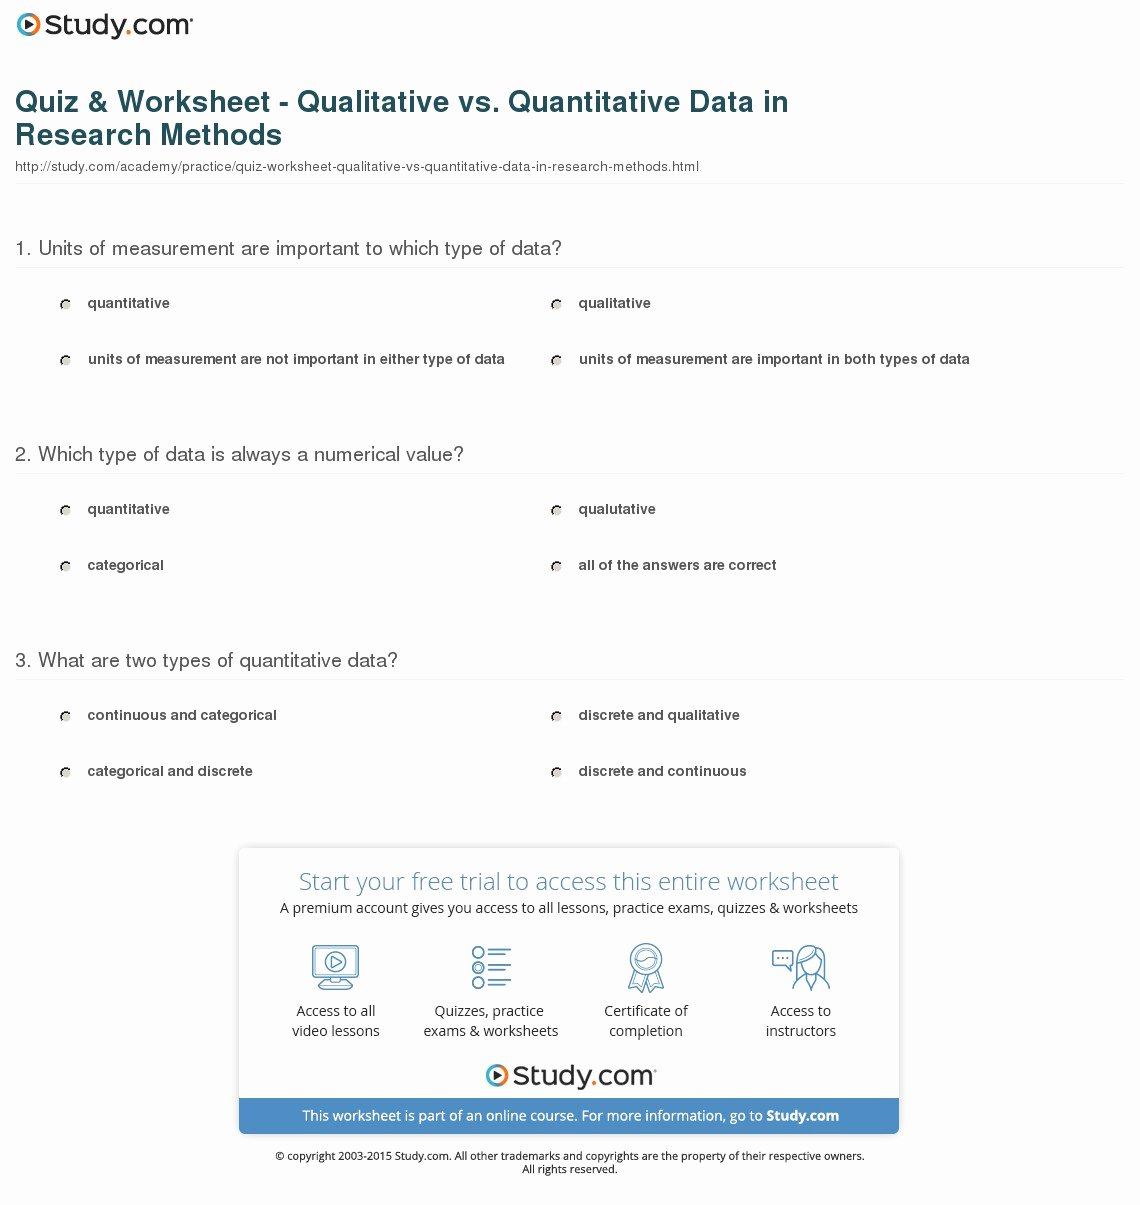 Qualitative Vs Quantitative Worksheet Fresh Quiz & Worksheet Qualitative Vs Quantitative Data In